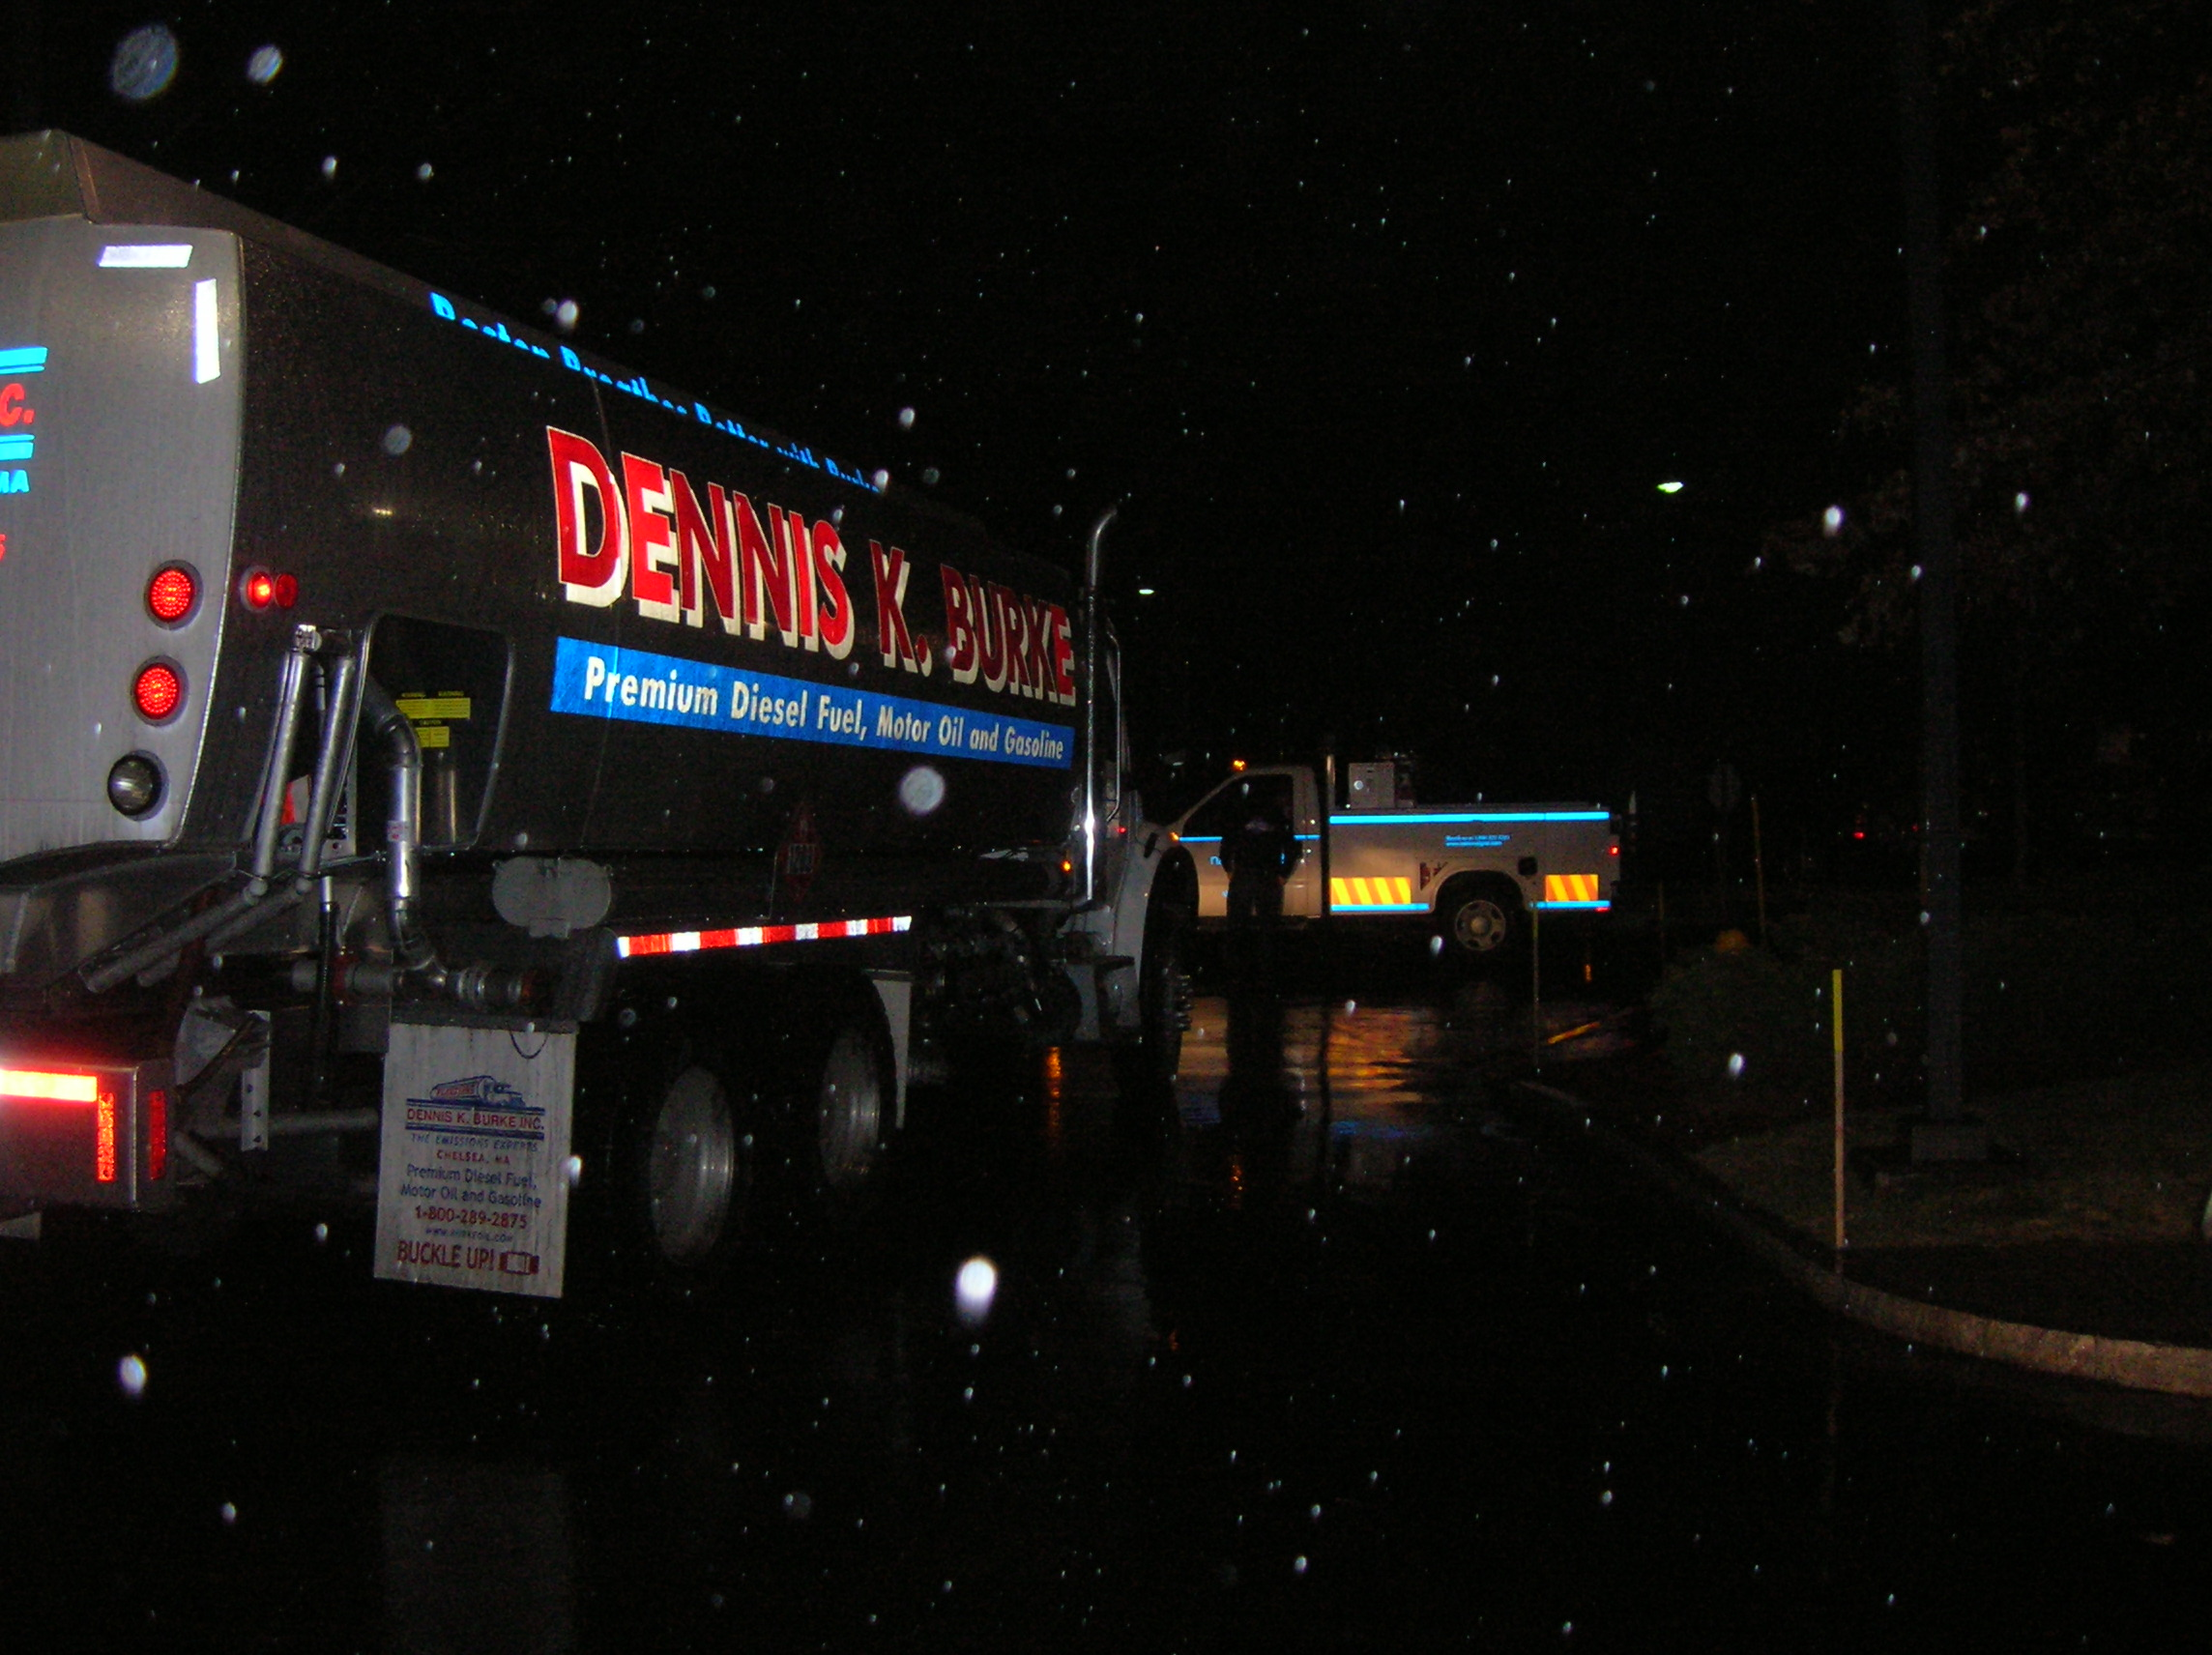 Dennis K. Burke refueling truck performing an emergency refueling at night